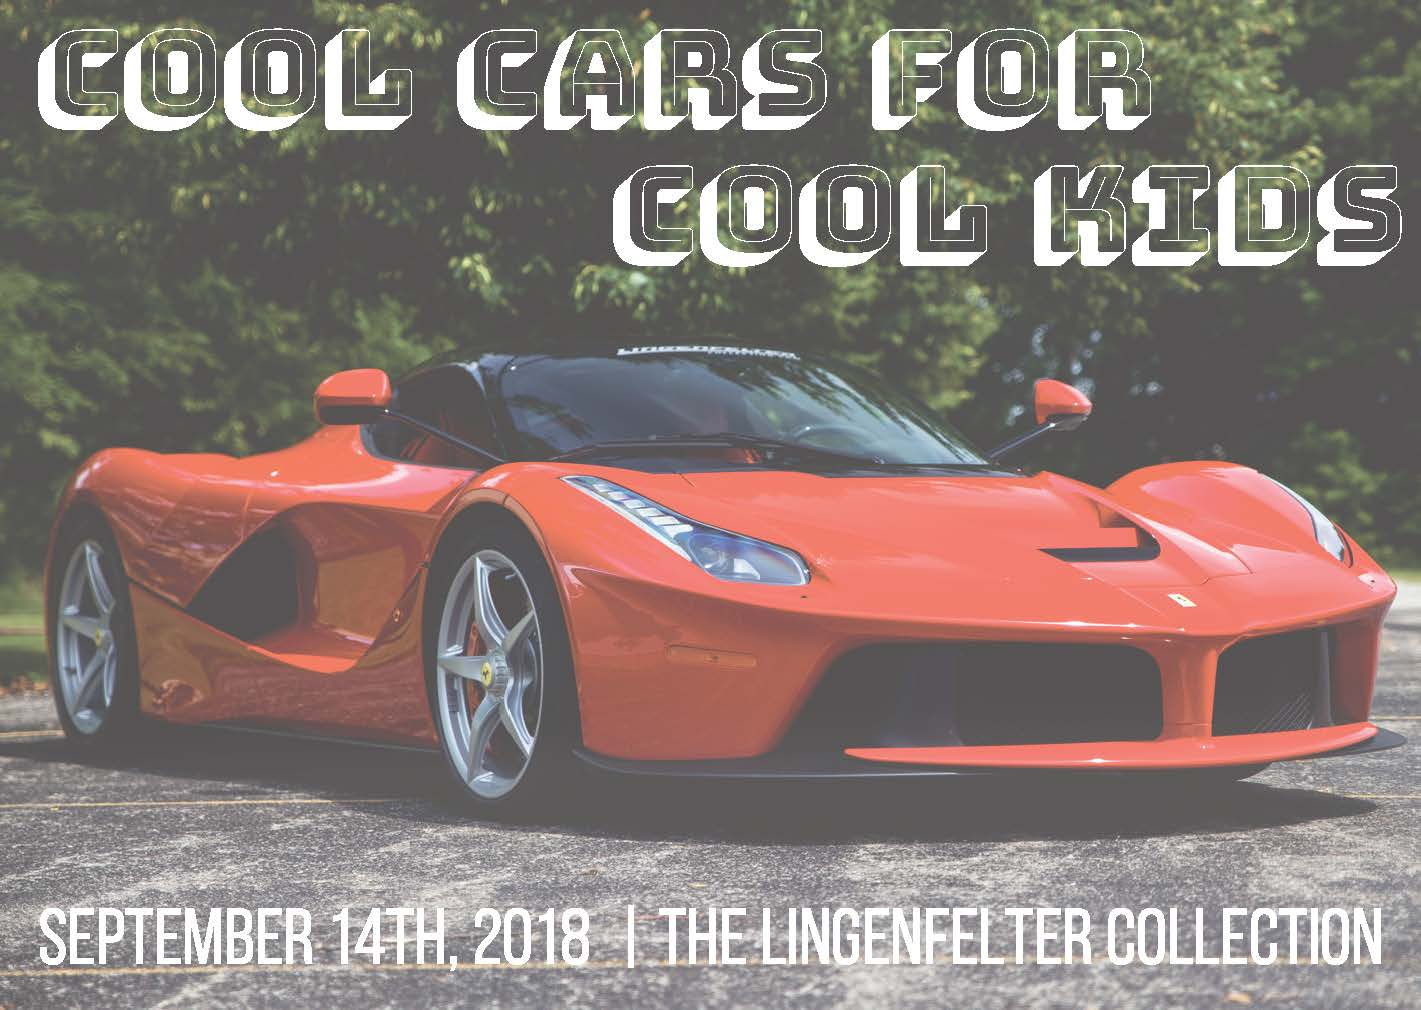 Showcasing delicious food, great entertainment, and a variety of beautiful exotic cars, this is one event that you won't want to ...